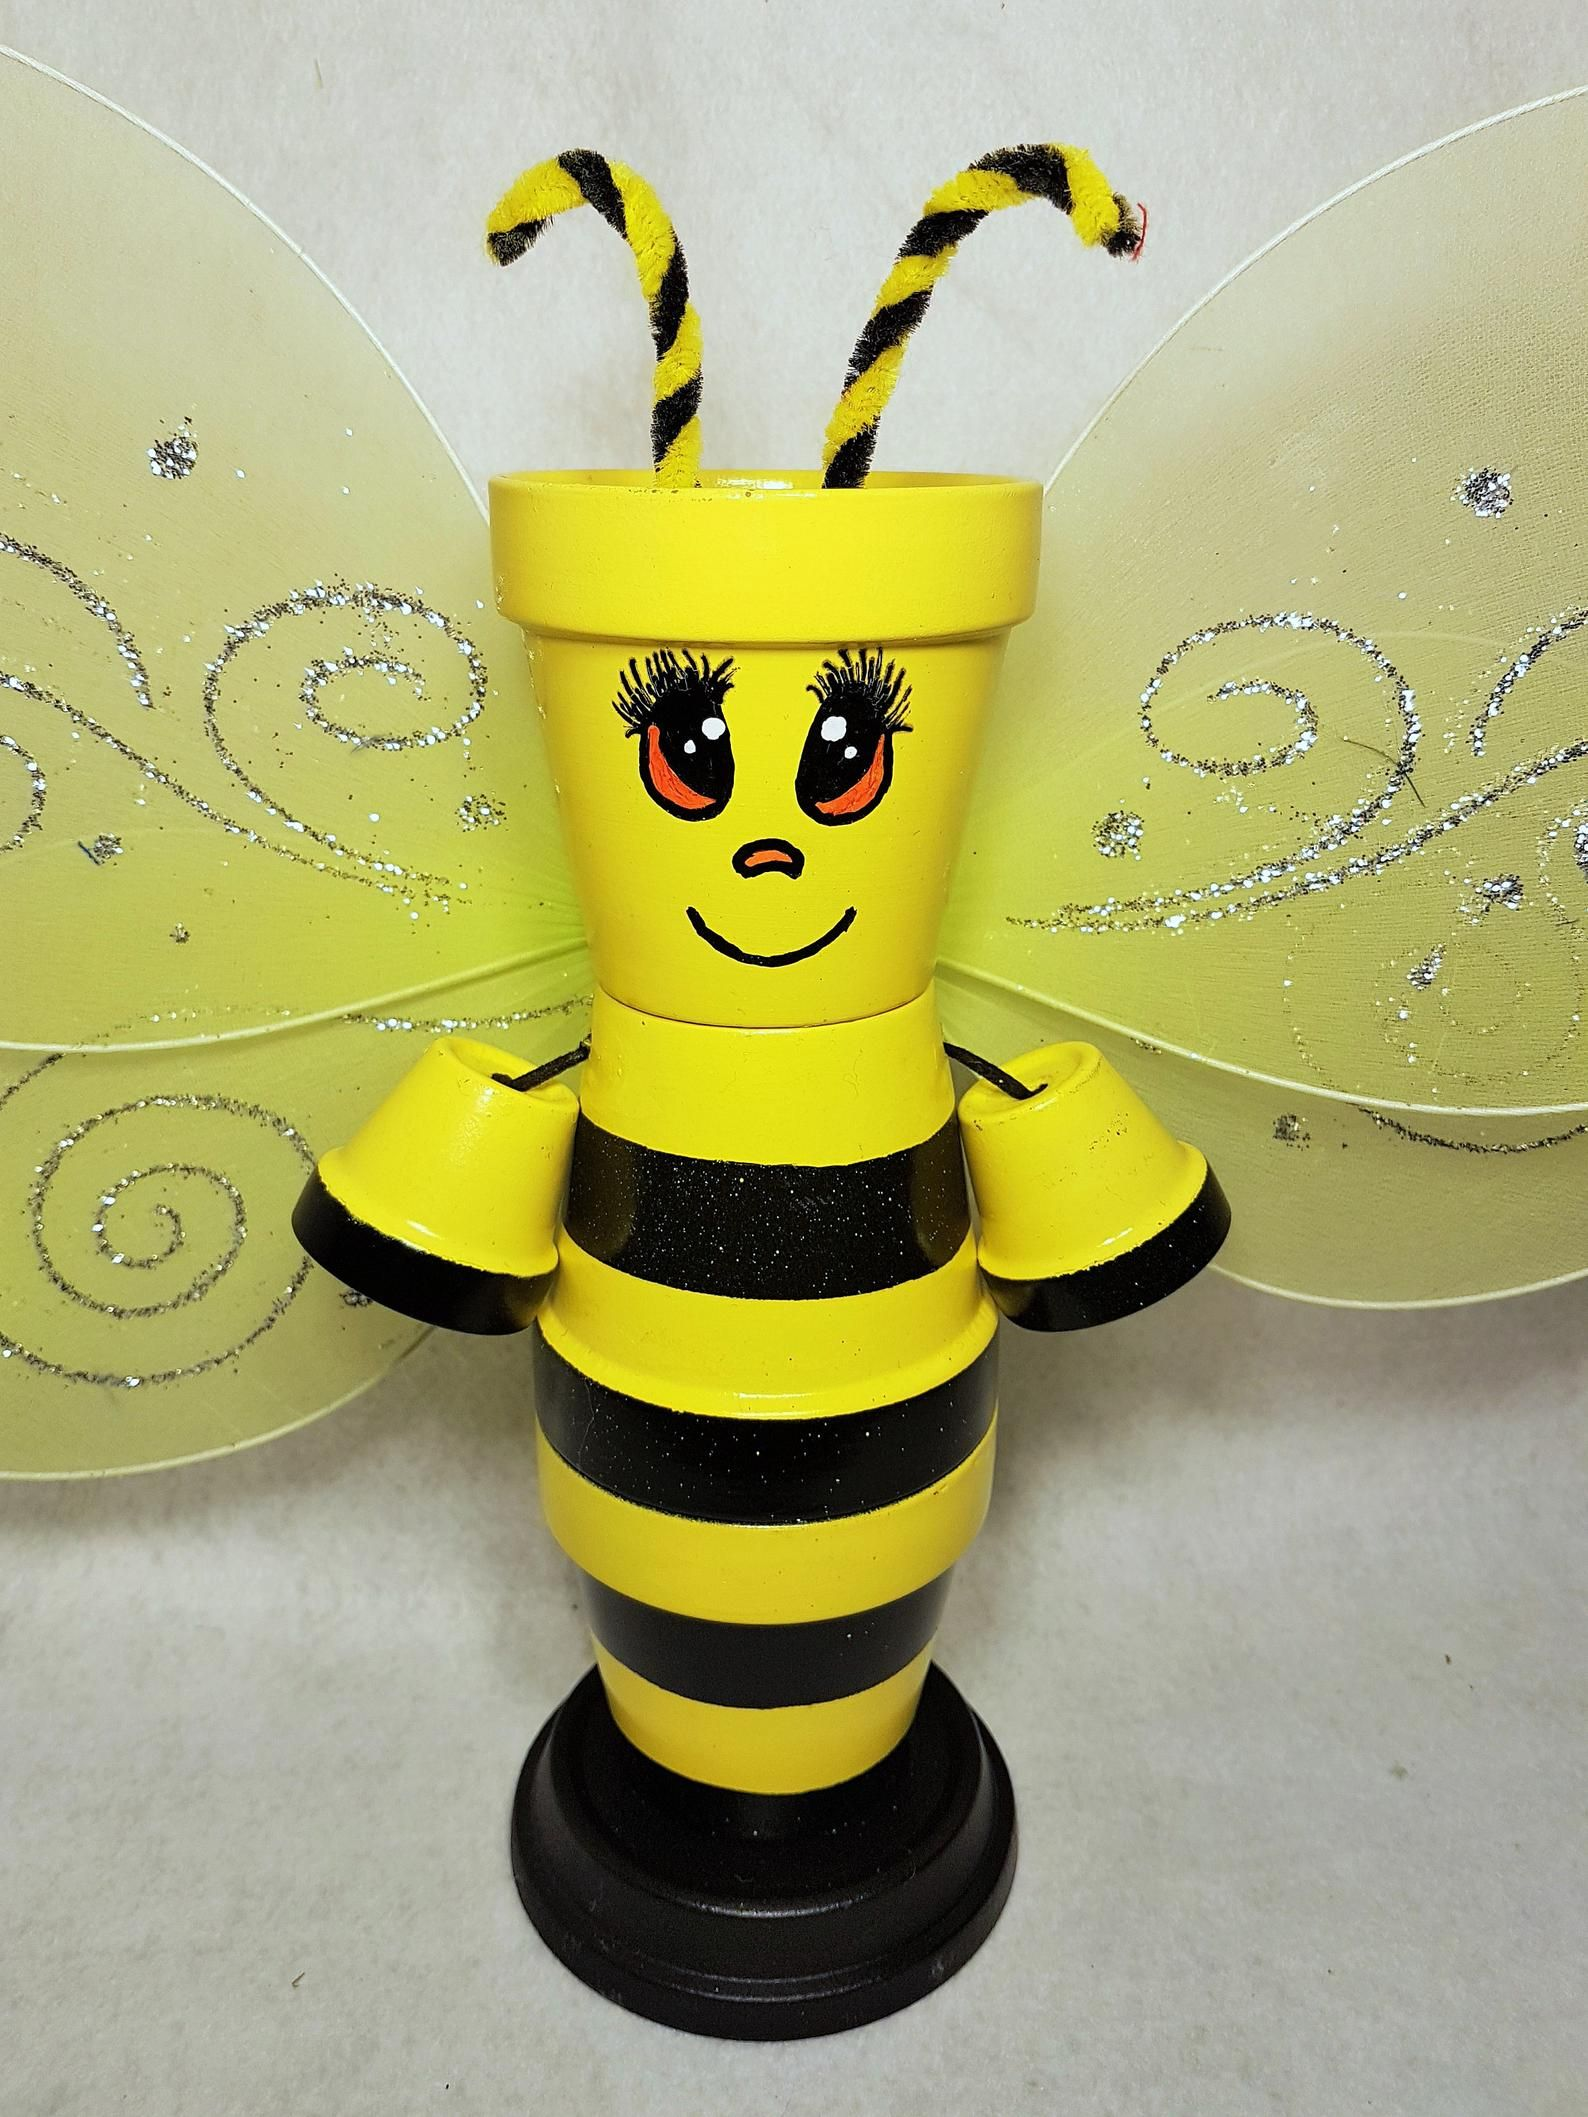 Bumble Bee Clay Pot People Garden Decoration Clay pots